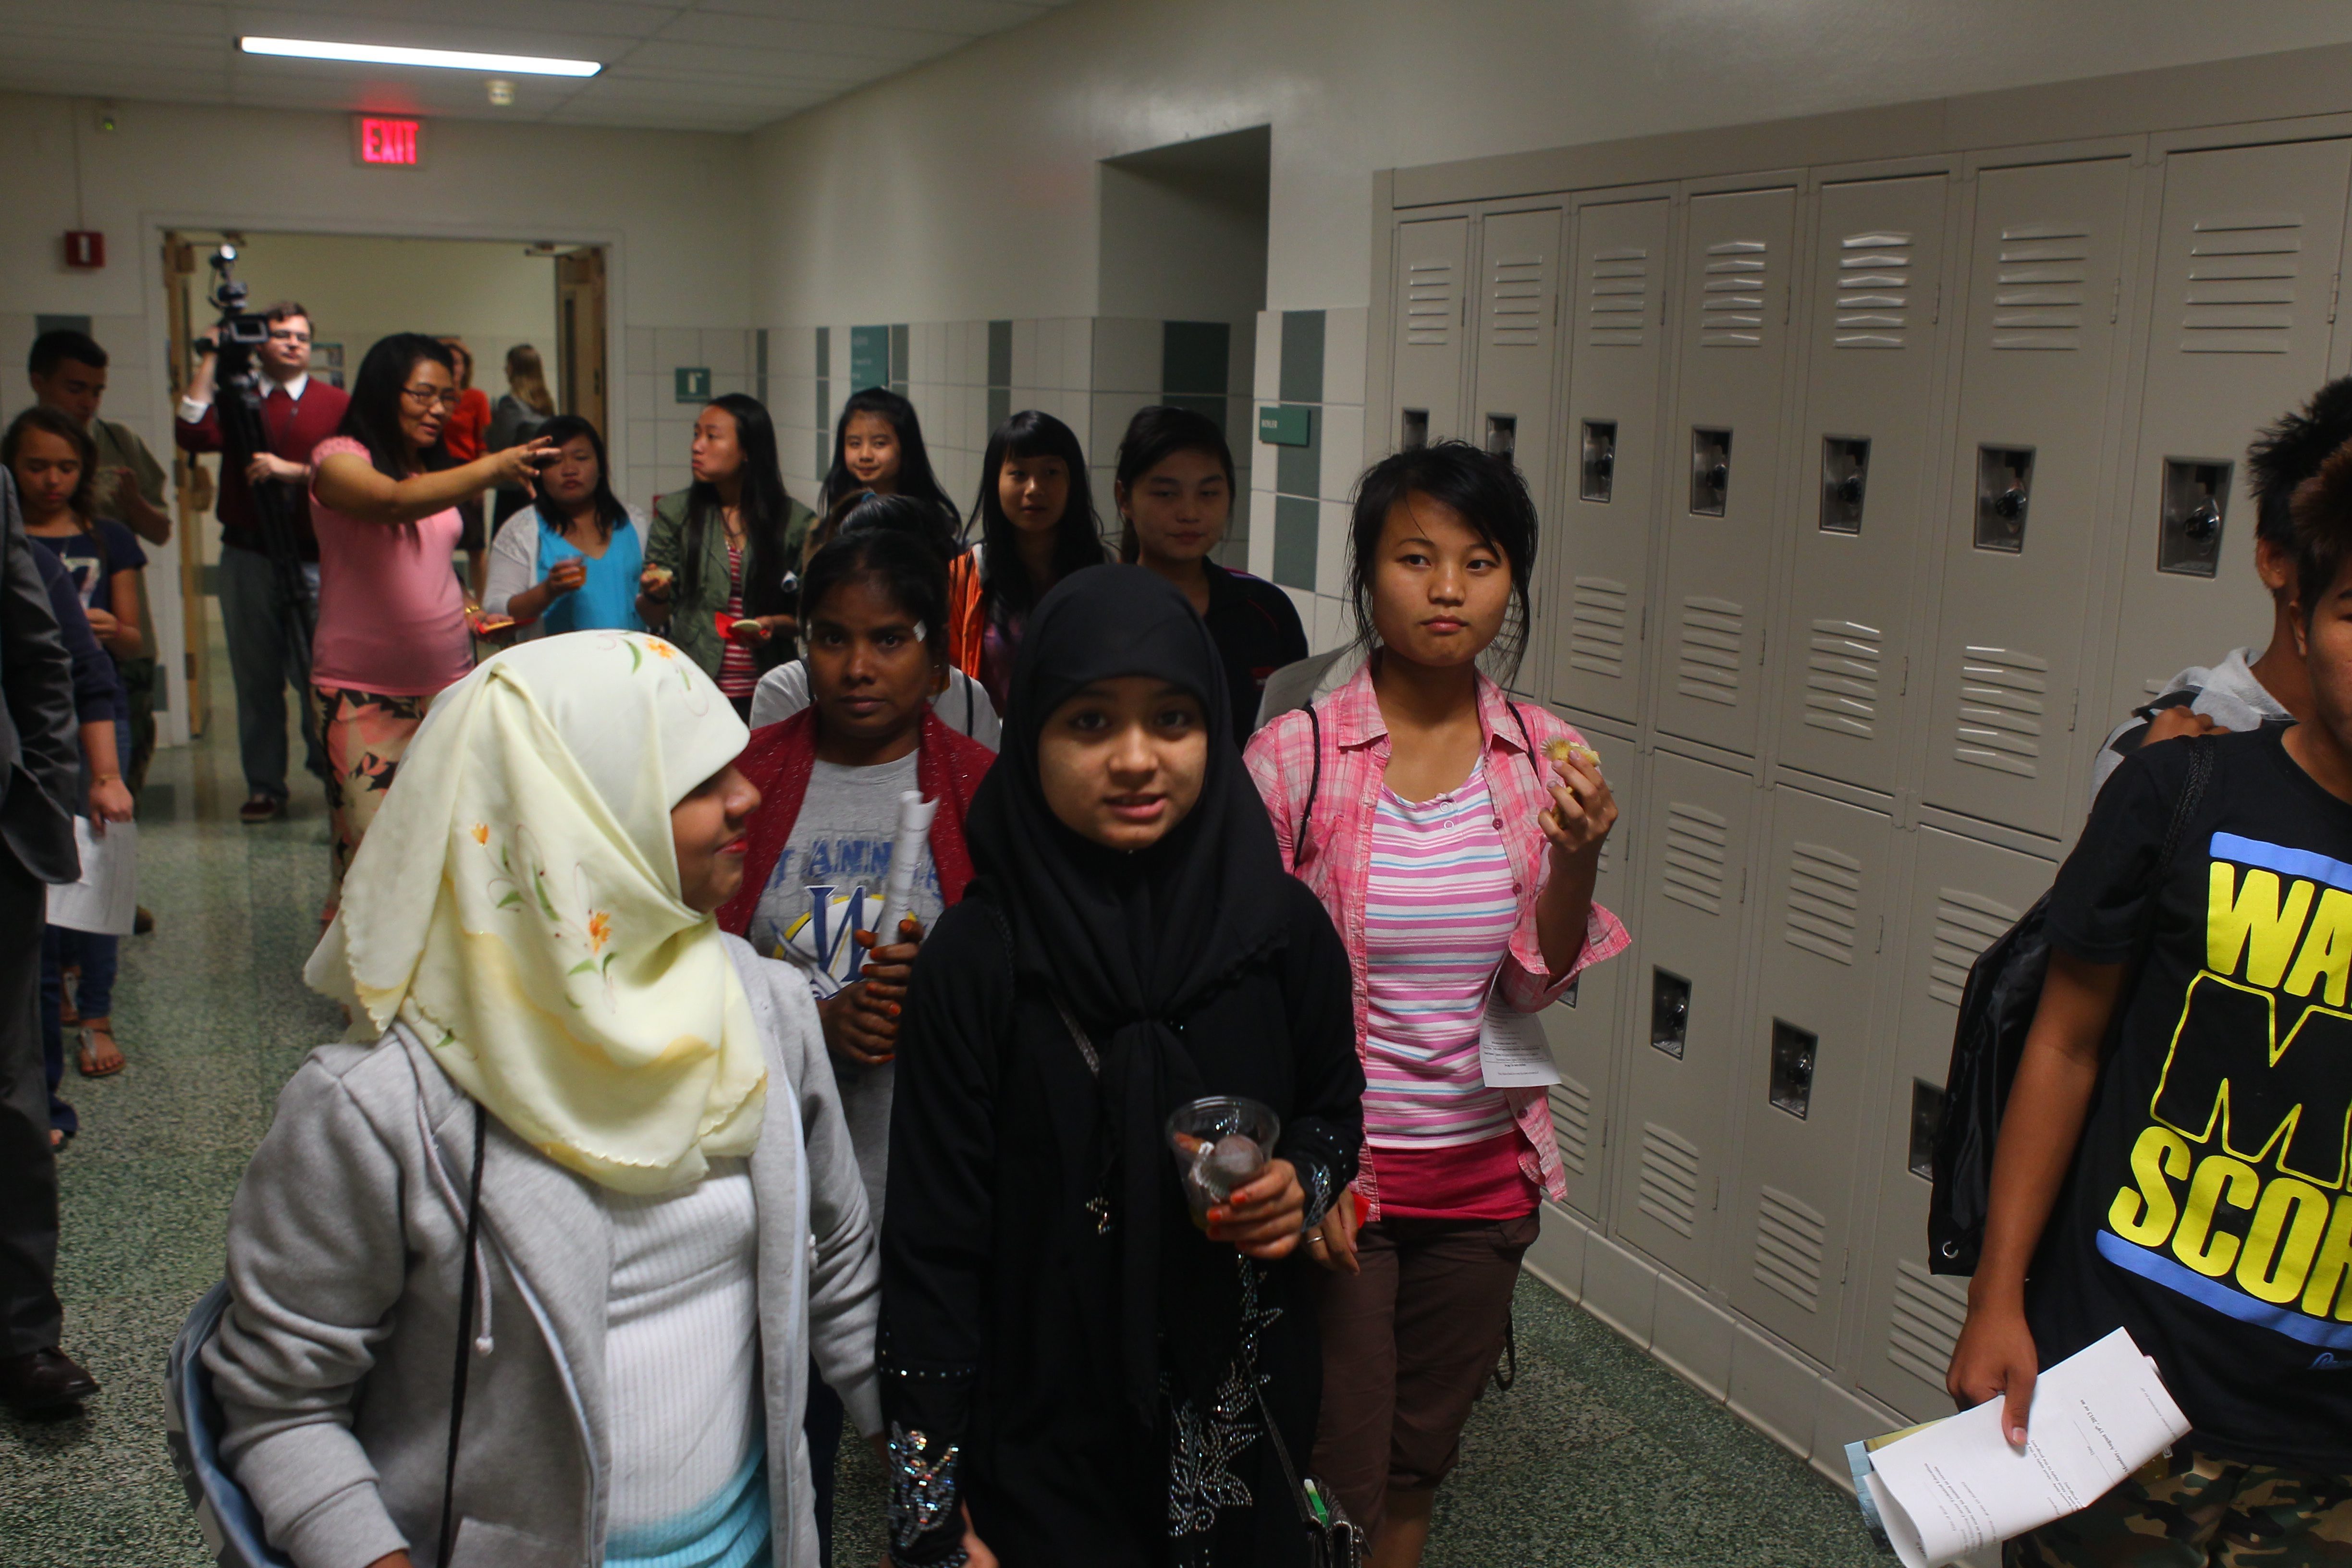 About 60 students, many of whom face English language barriers, visited the BOCES Harkness Center.